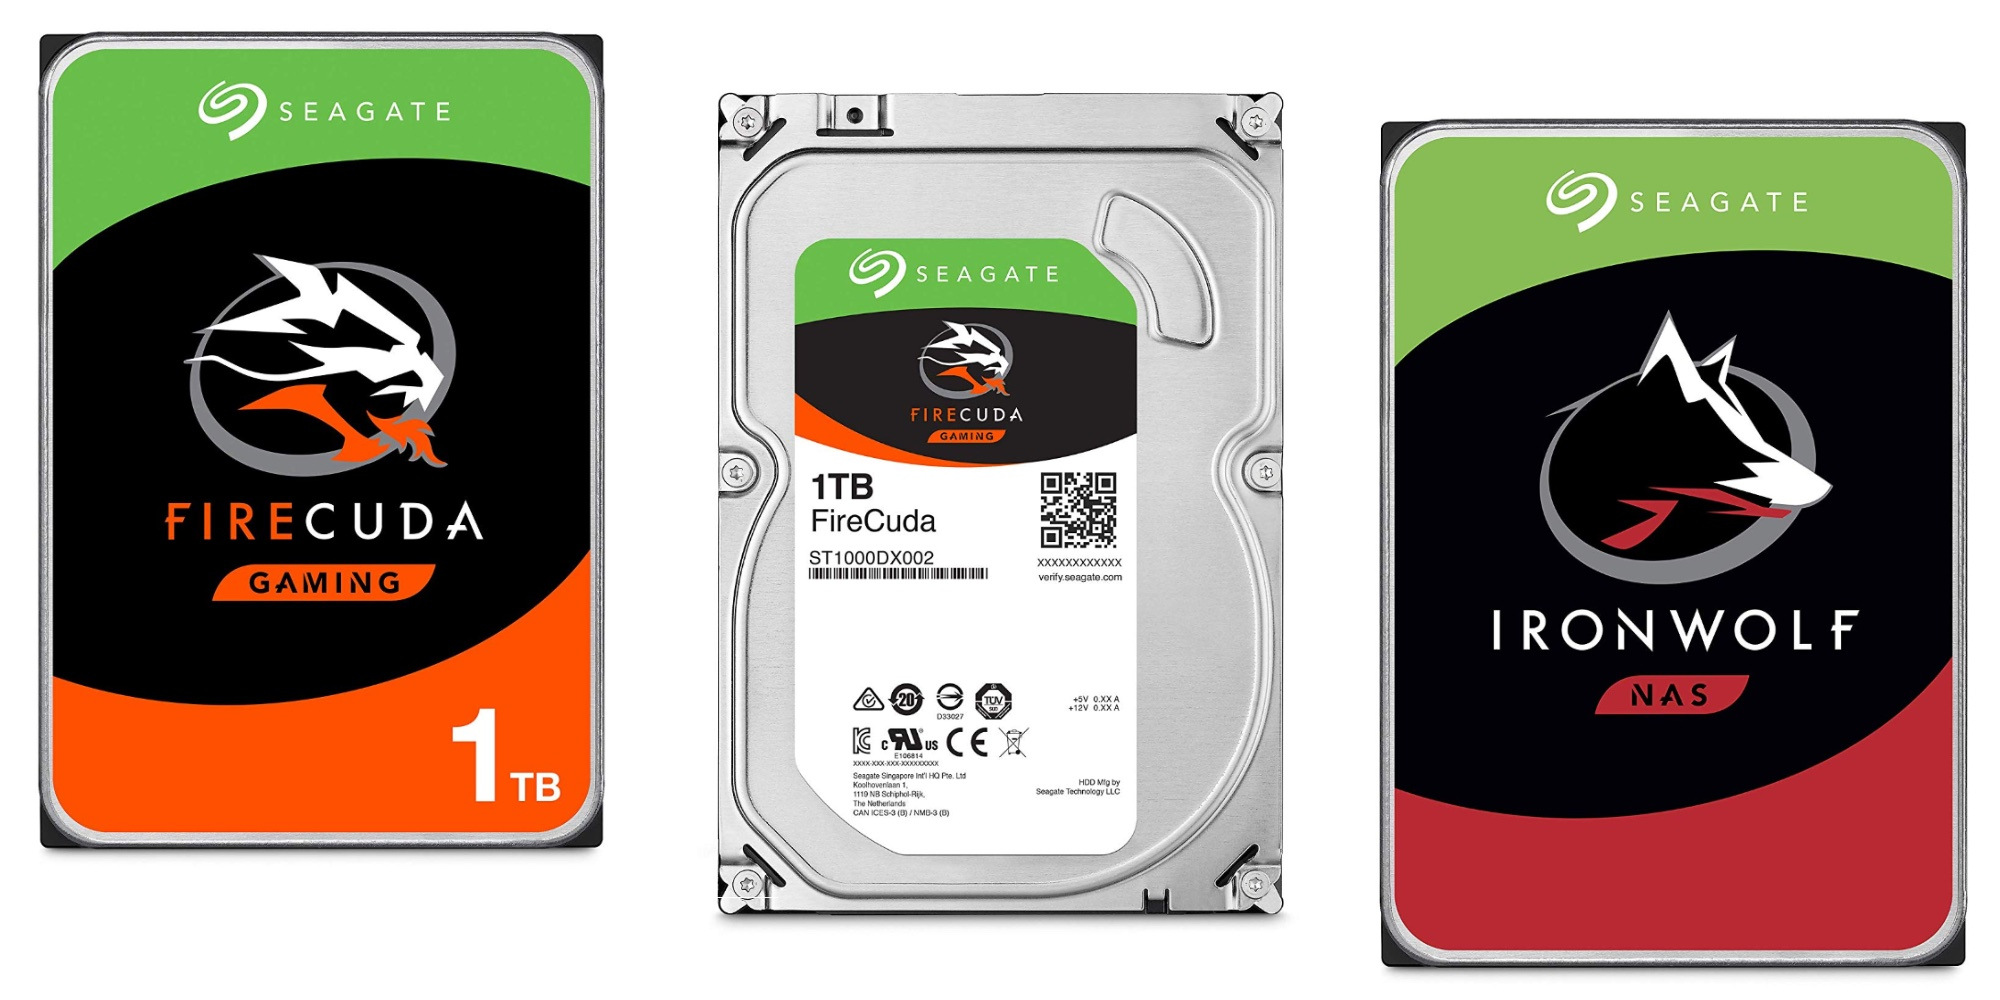 Seagate Ironwolf 10tb Hits New Low At 250 More From 60 9to5toys